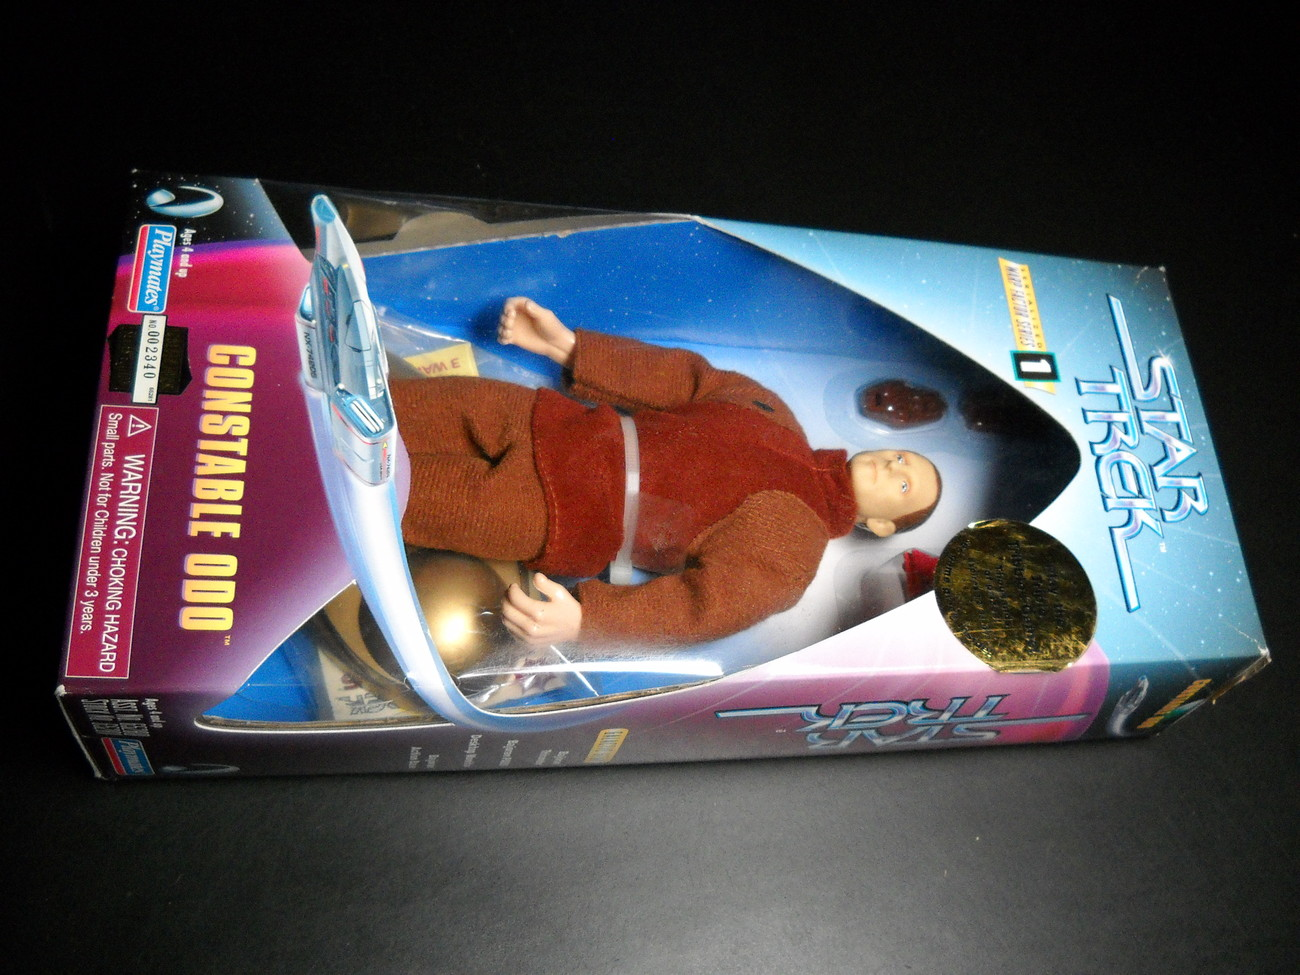 Toy star trek playmates warp factor series one constable odo ds9 1997 9 inch boxed sealed 01